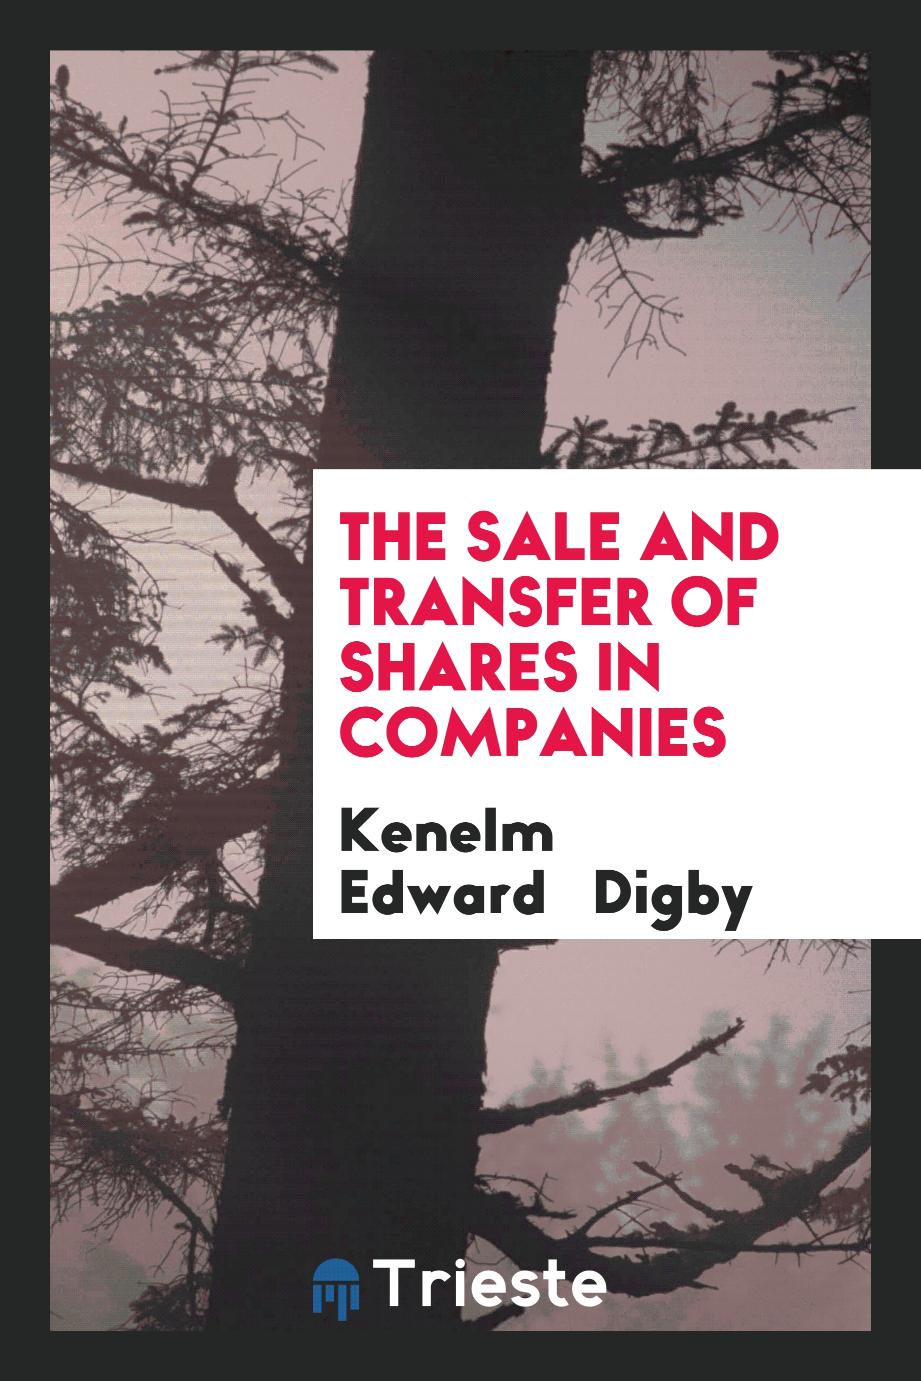 The Sale and Transfer of Shares in Companies